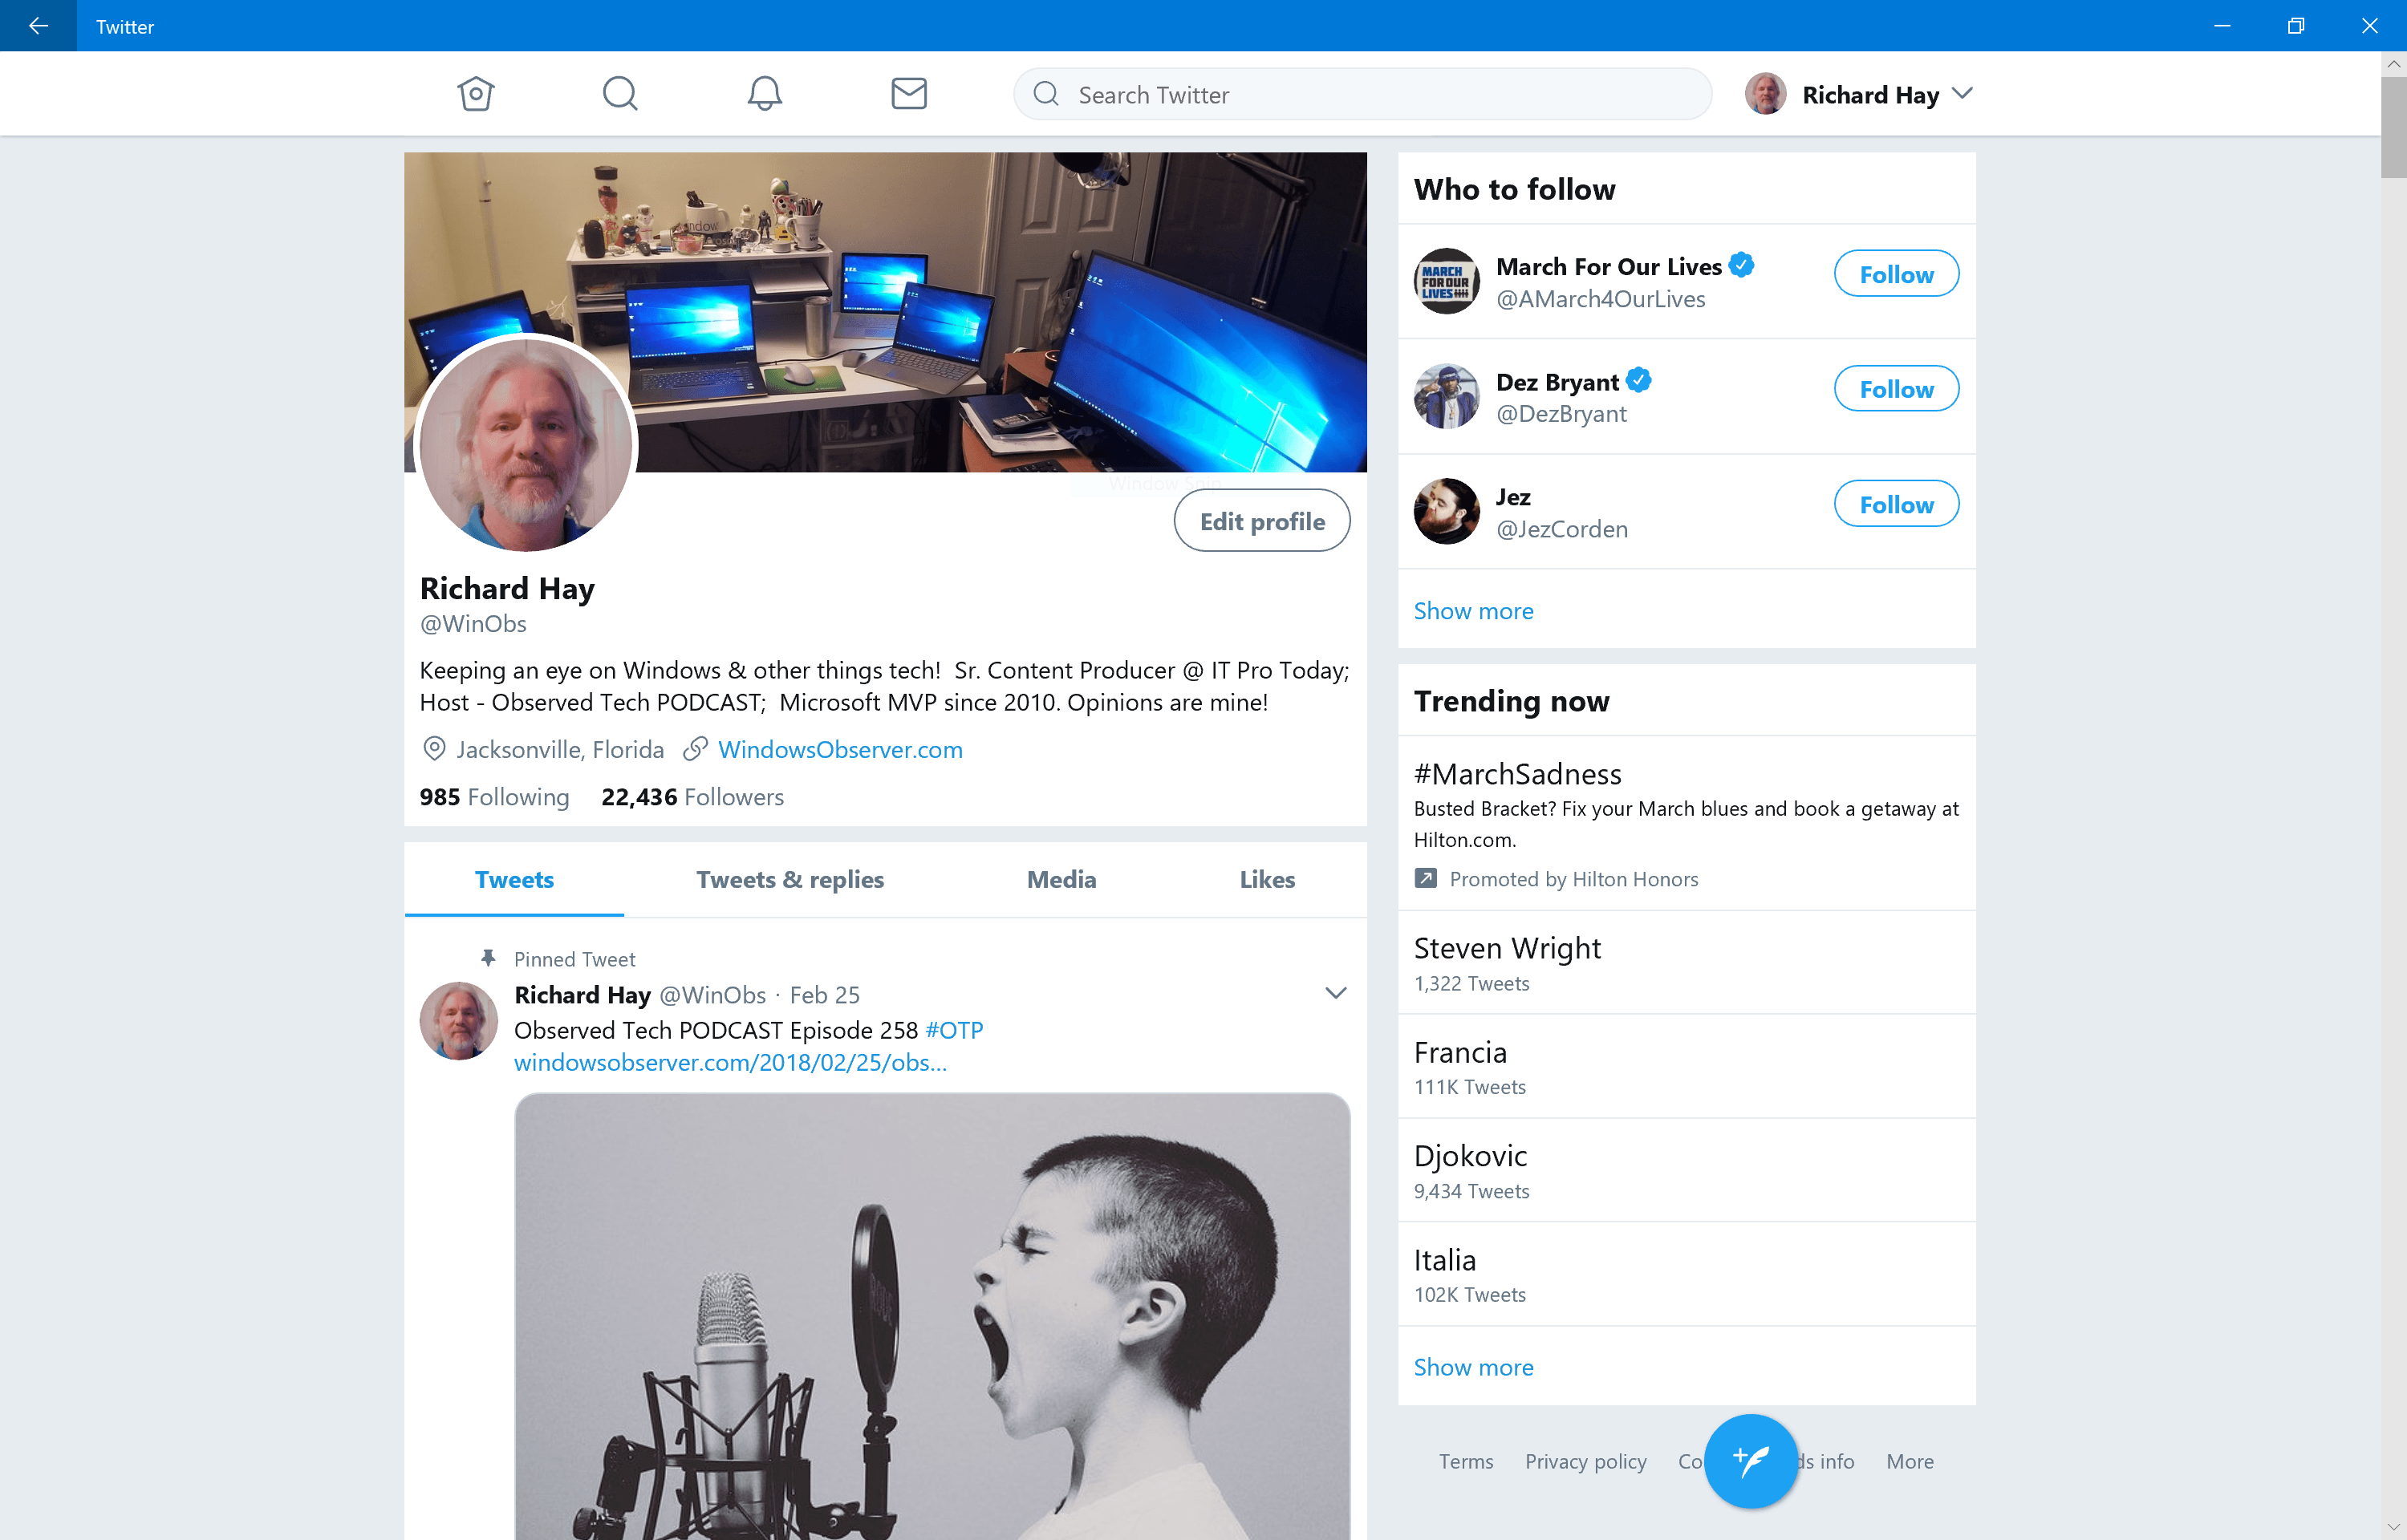 Official Twitter App for Windows 10 Finally Updated